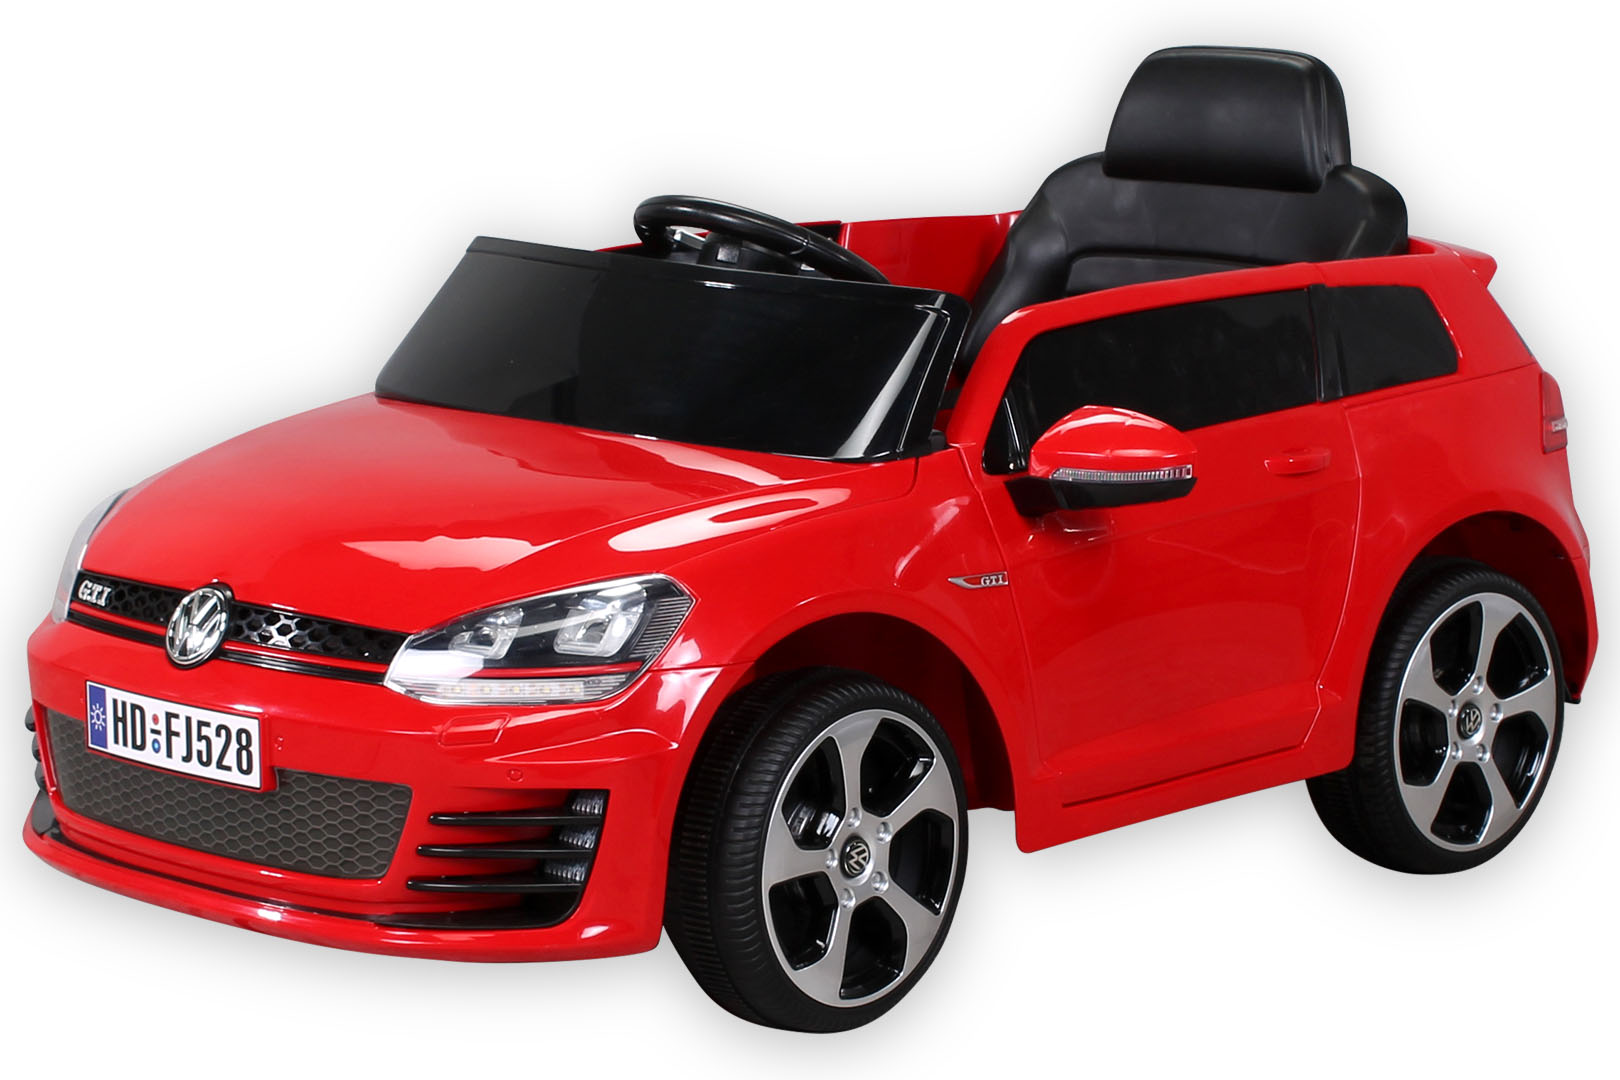 elektroauto vw golf gti kinderauto kinderfahrzeug kinder. Black Bedroom Furniture Sets. Home Design Ideas